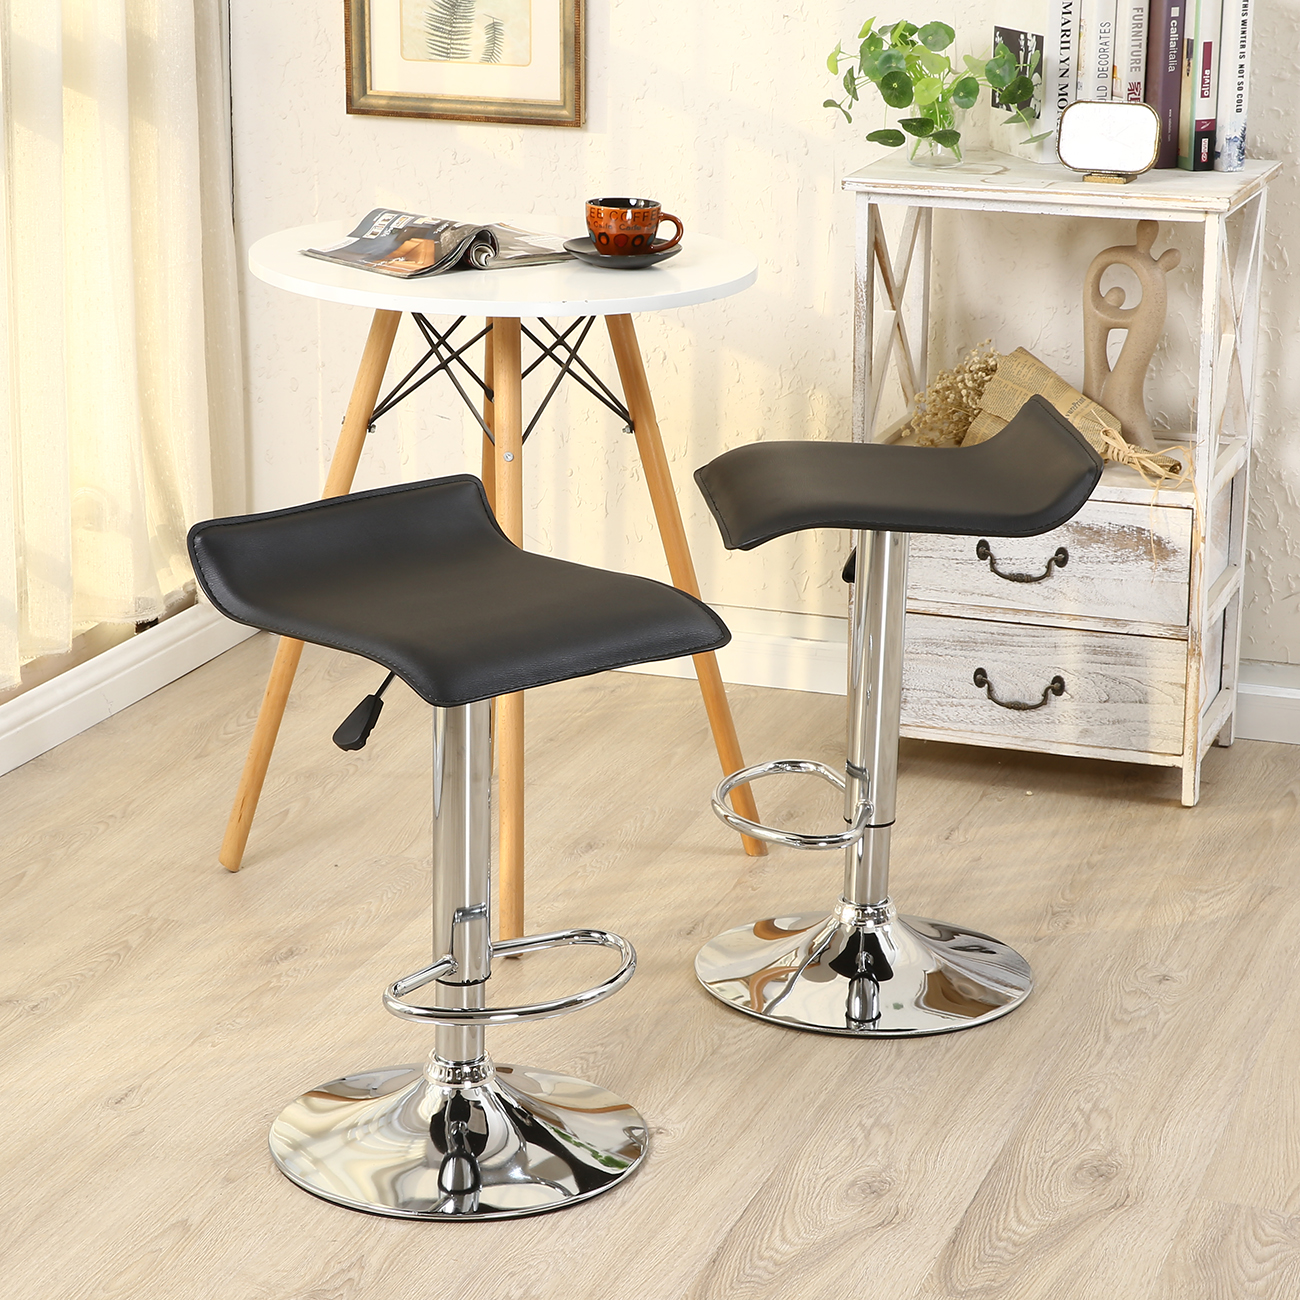 modern bar chairs 6 antique oak dining 2pc stools pu leather adjustable swivel